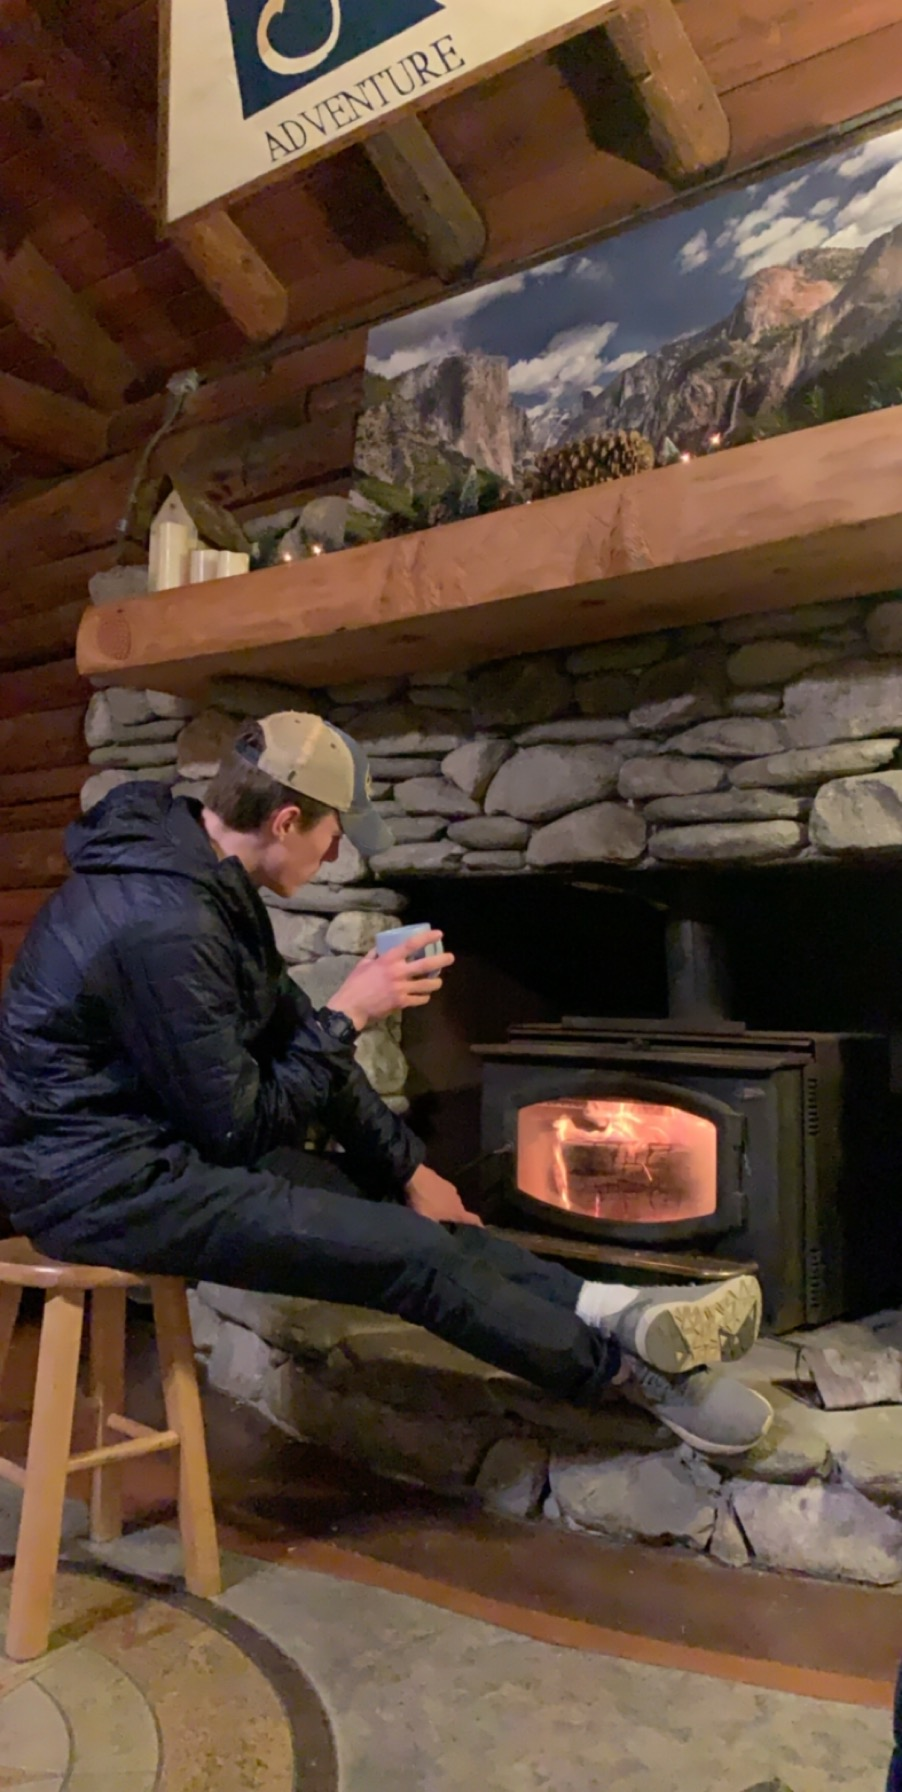 Student by wood stove at Summit Adventure base in California